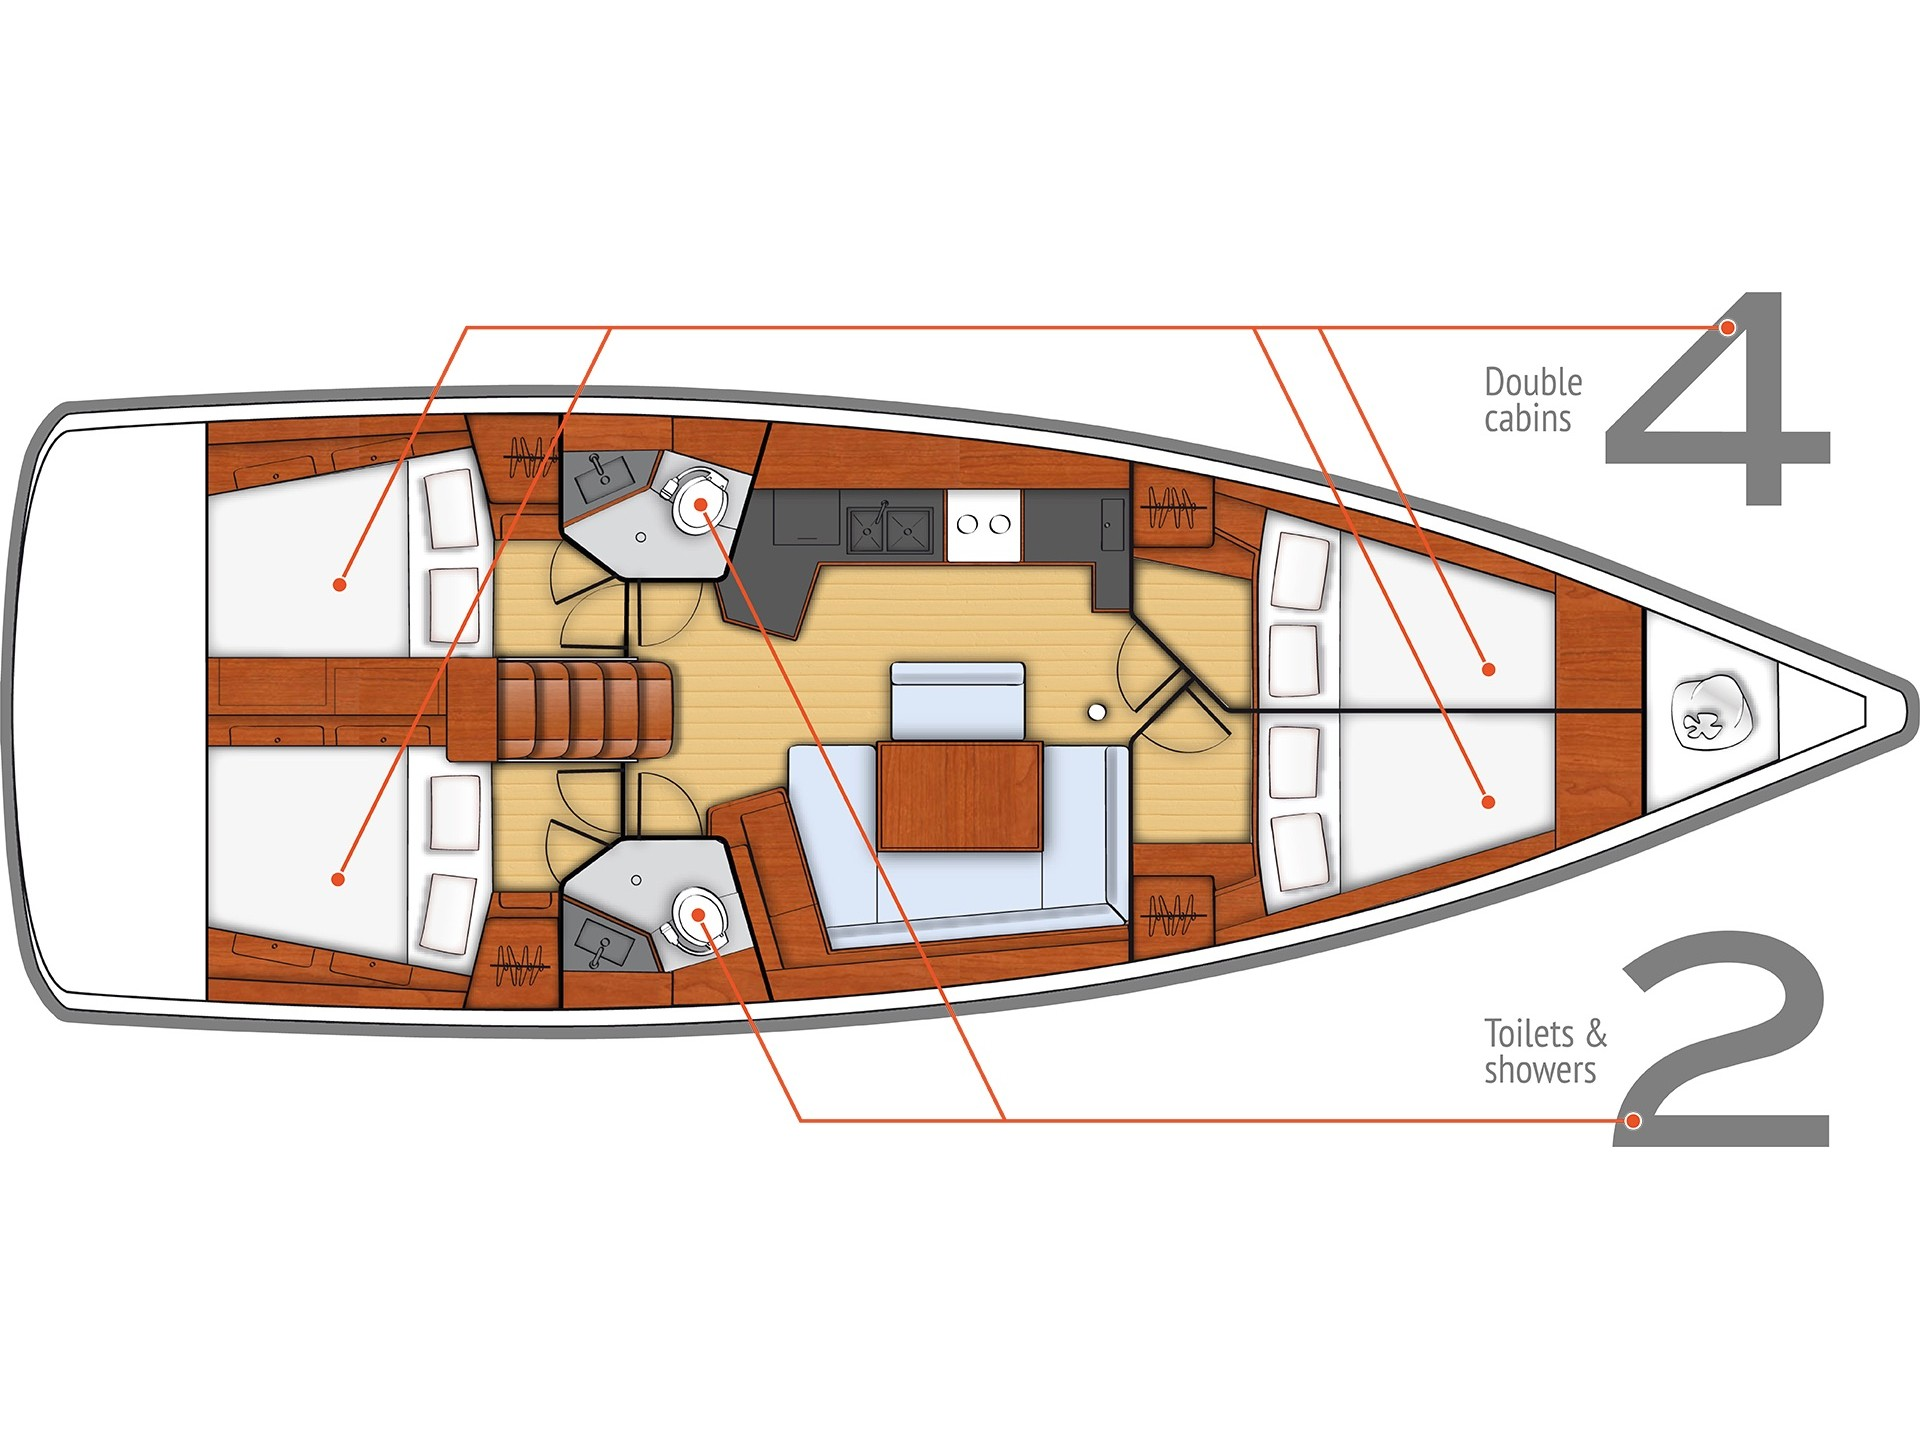 Oceanis 45 (4 cabs) (Cancan) Plan image - 2